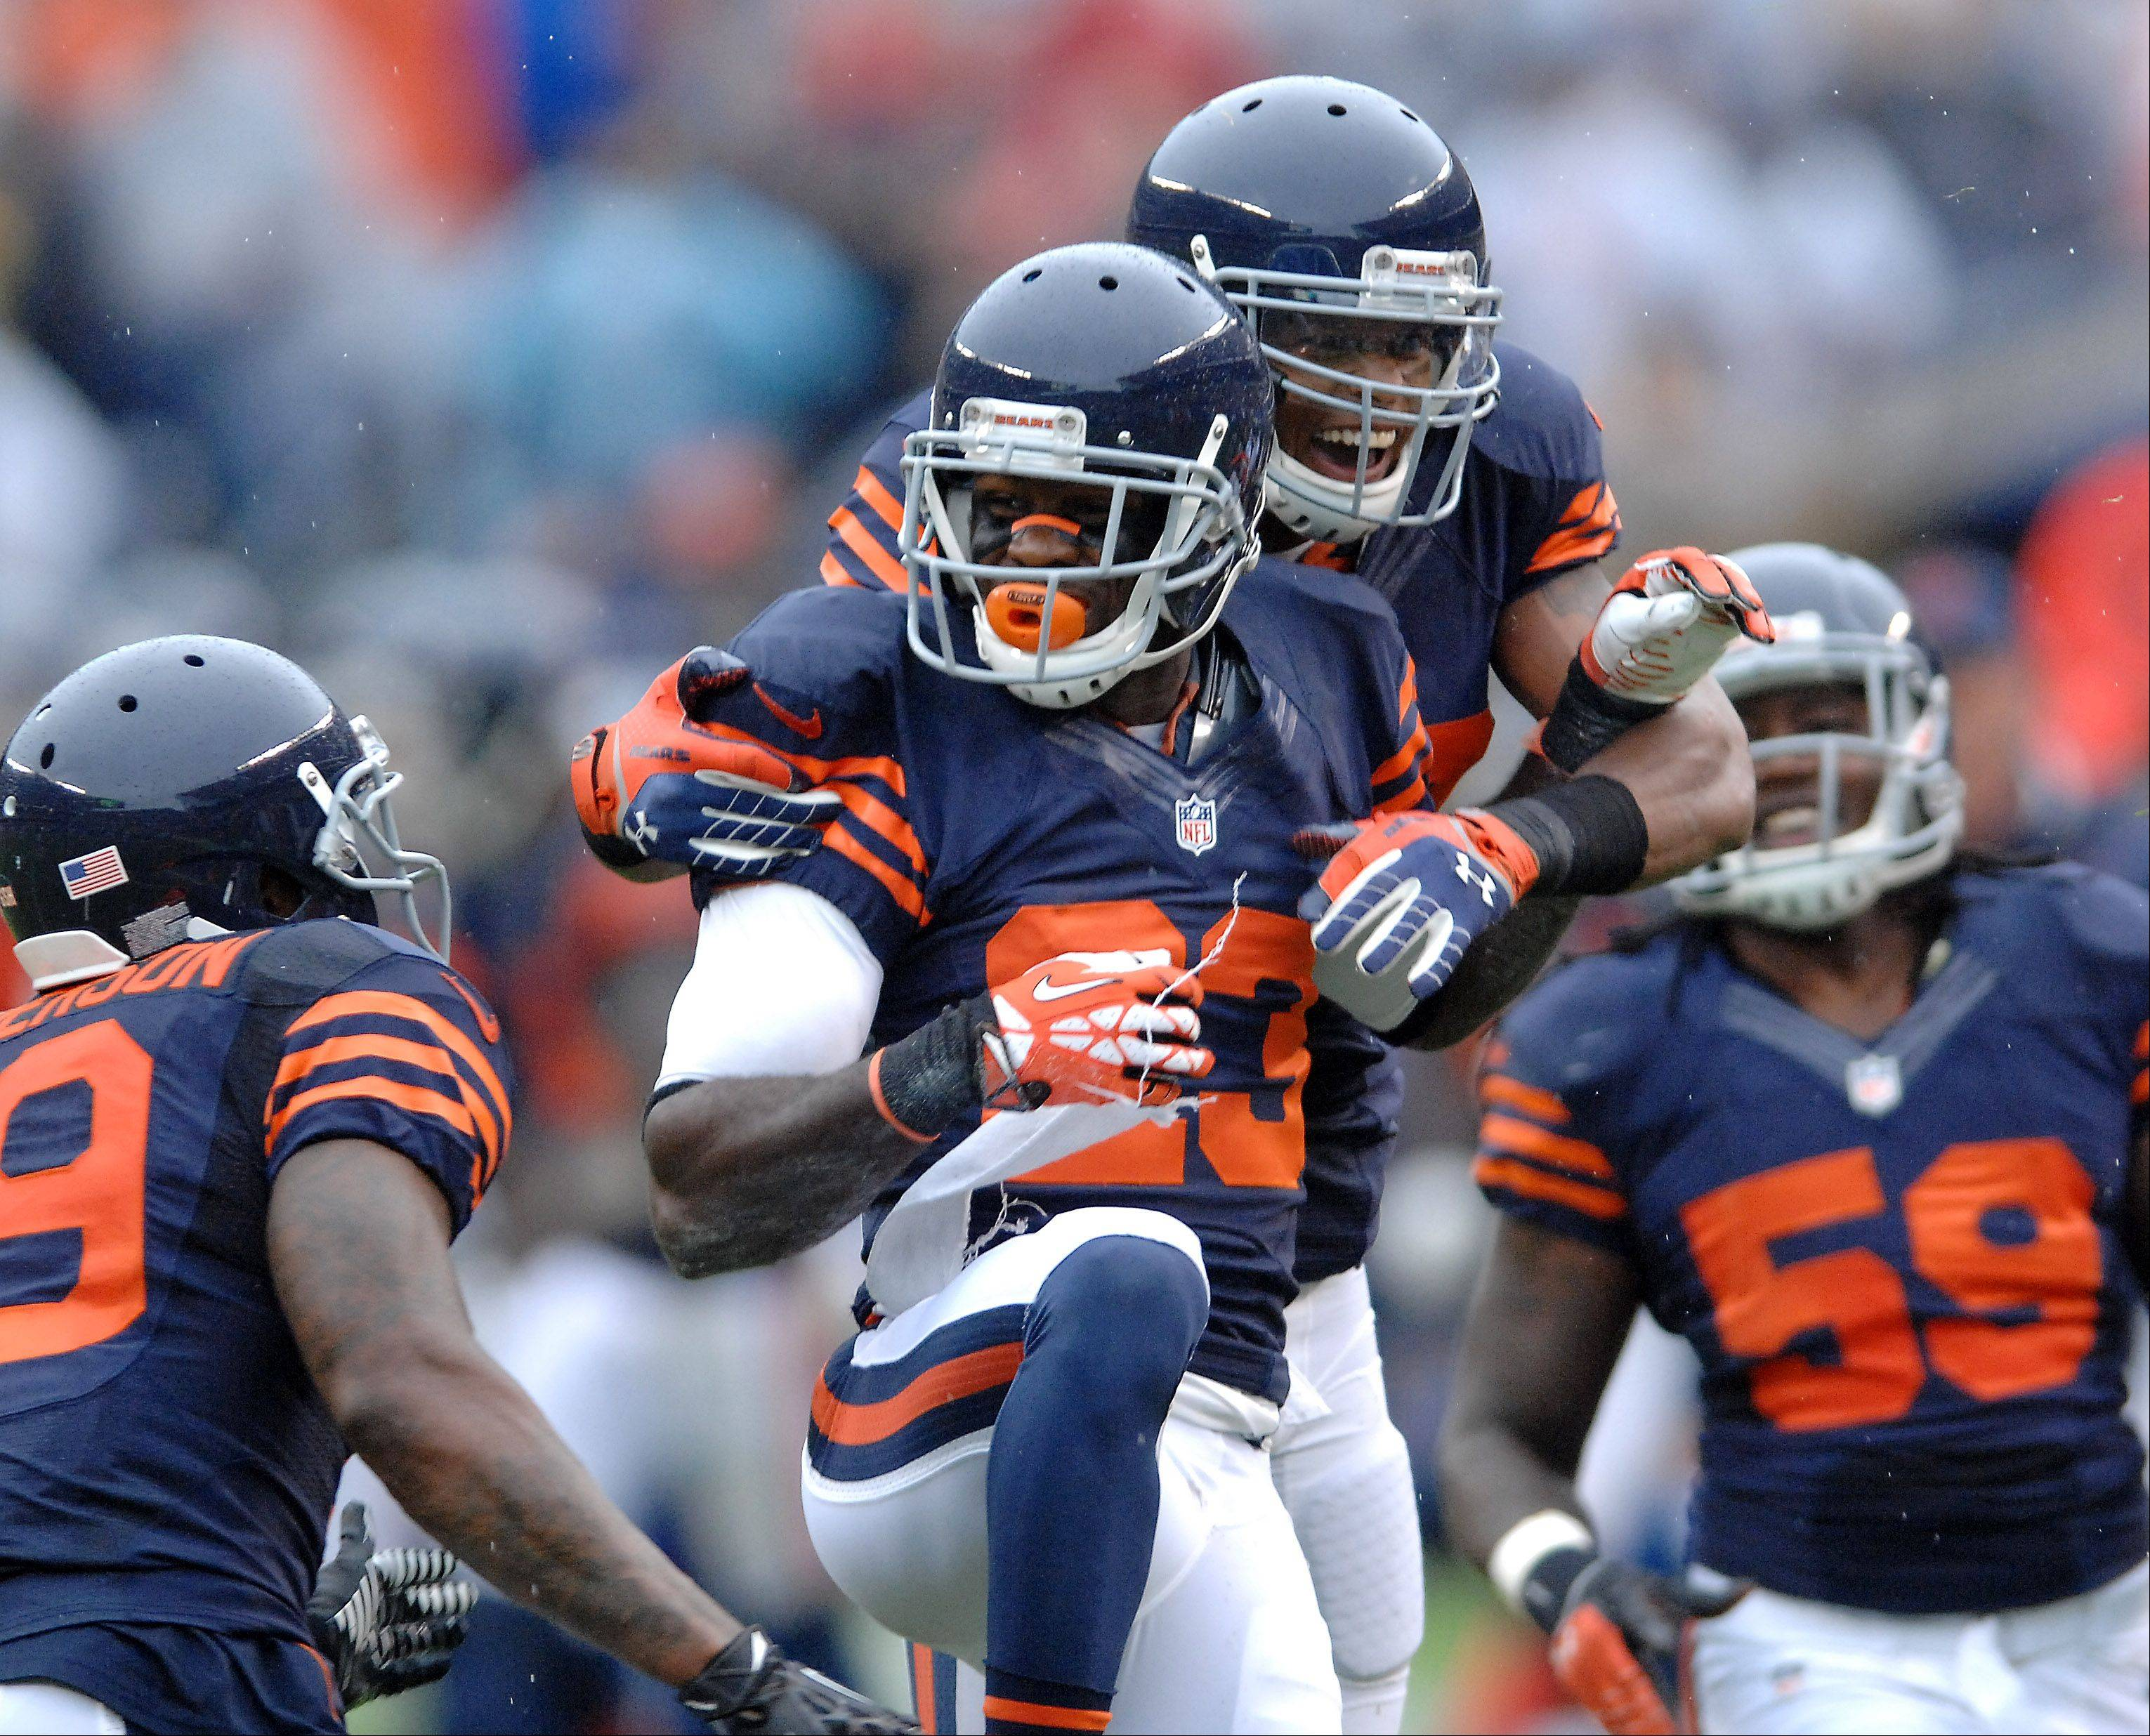 Bears teammates pile on Devin Hester after he nearly scored on a kick return in the second quarter during Sunday's game at Soldier Field in Chicago.